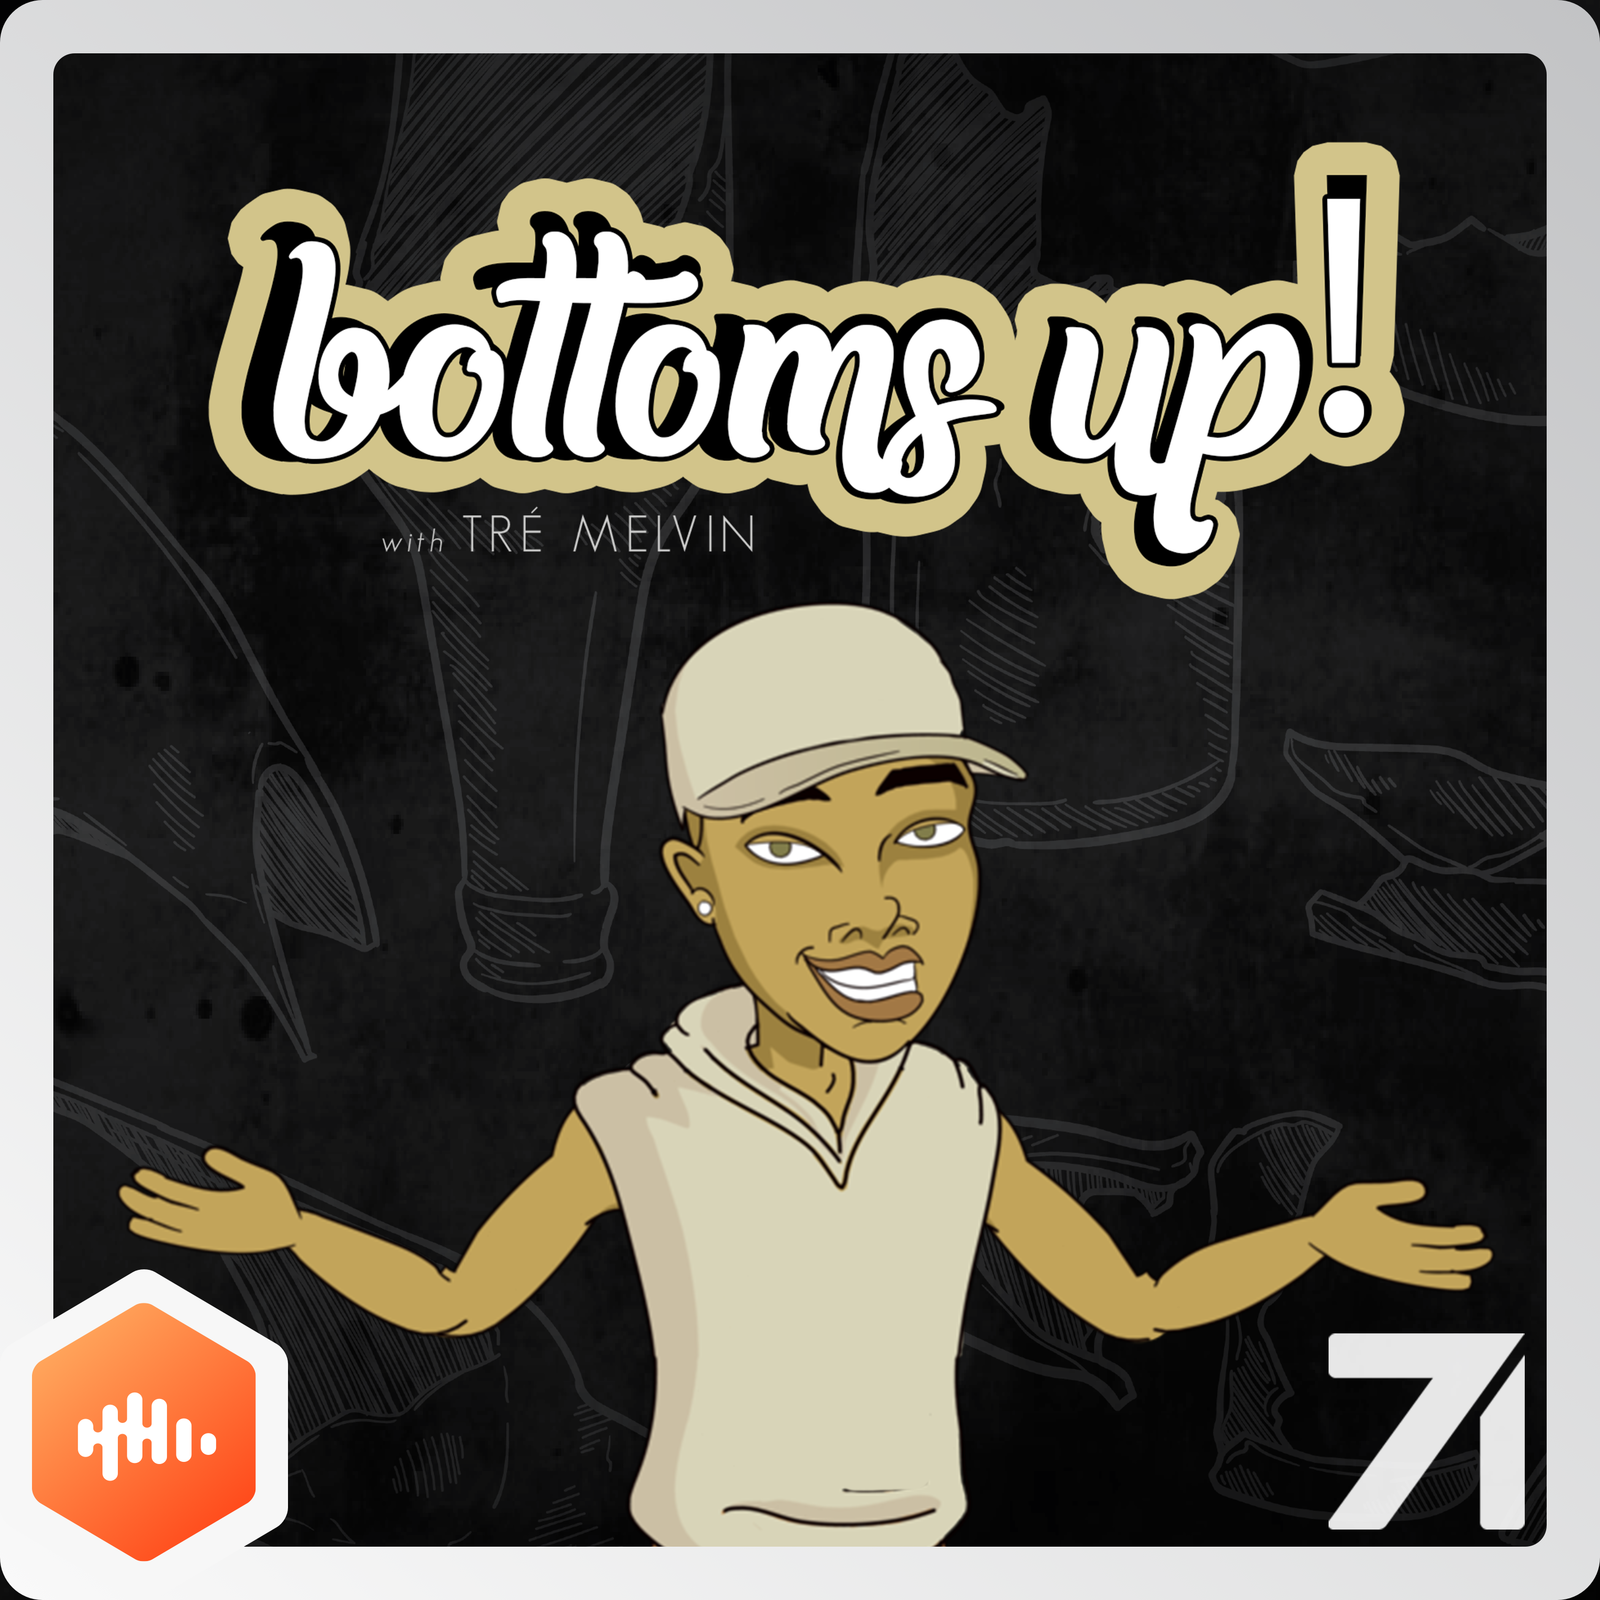 4: Virgin Strap-Ons (feat. Hartbeat) - Bottoms Up! with Tré Melvin